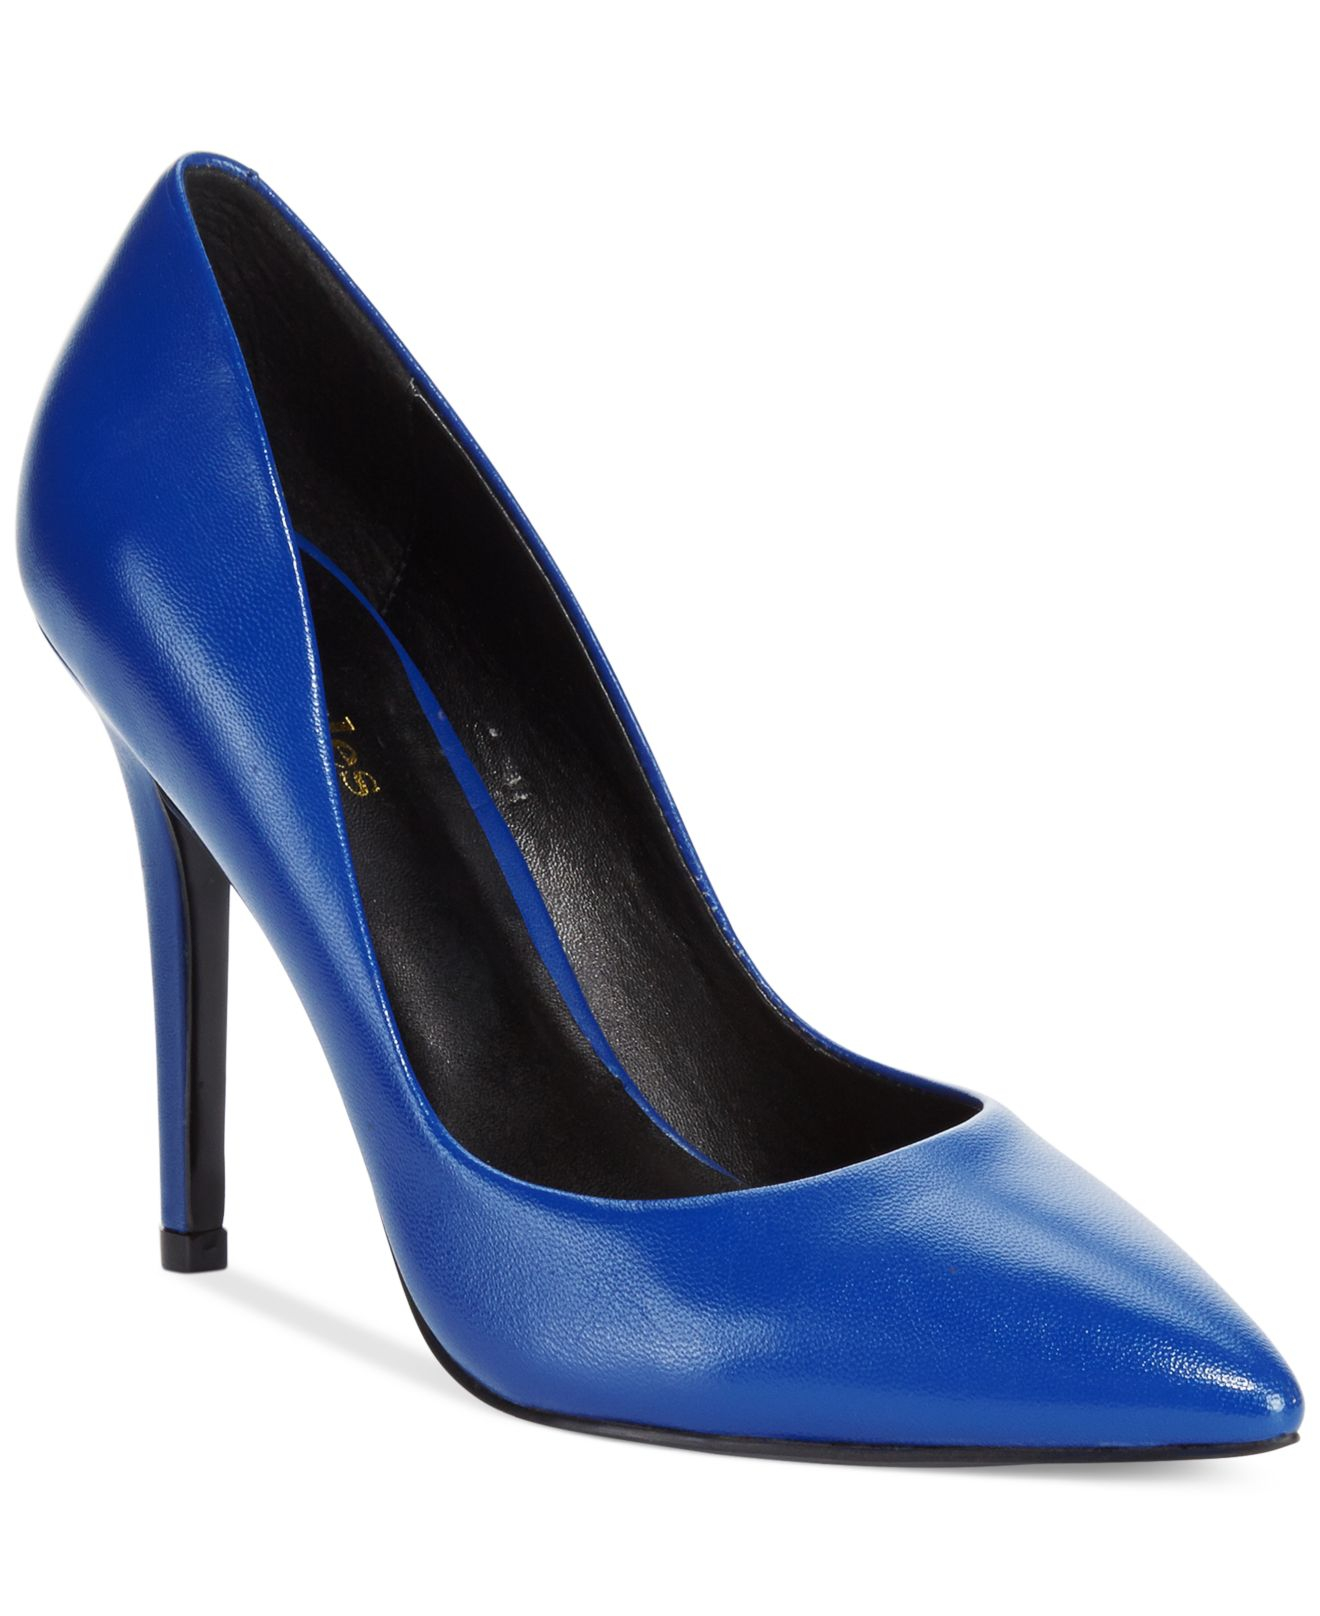 Blue Womens Shoes Sale: Save Up to 75% Off! Shop jomp16.tk's huge selection of Blue Shoes for Women - Over 3, styles available. FREE Shipping & Exchanges, and a % price guarantee!